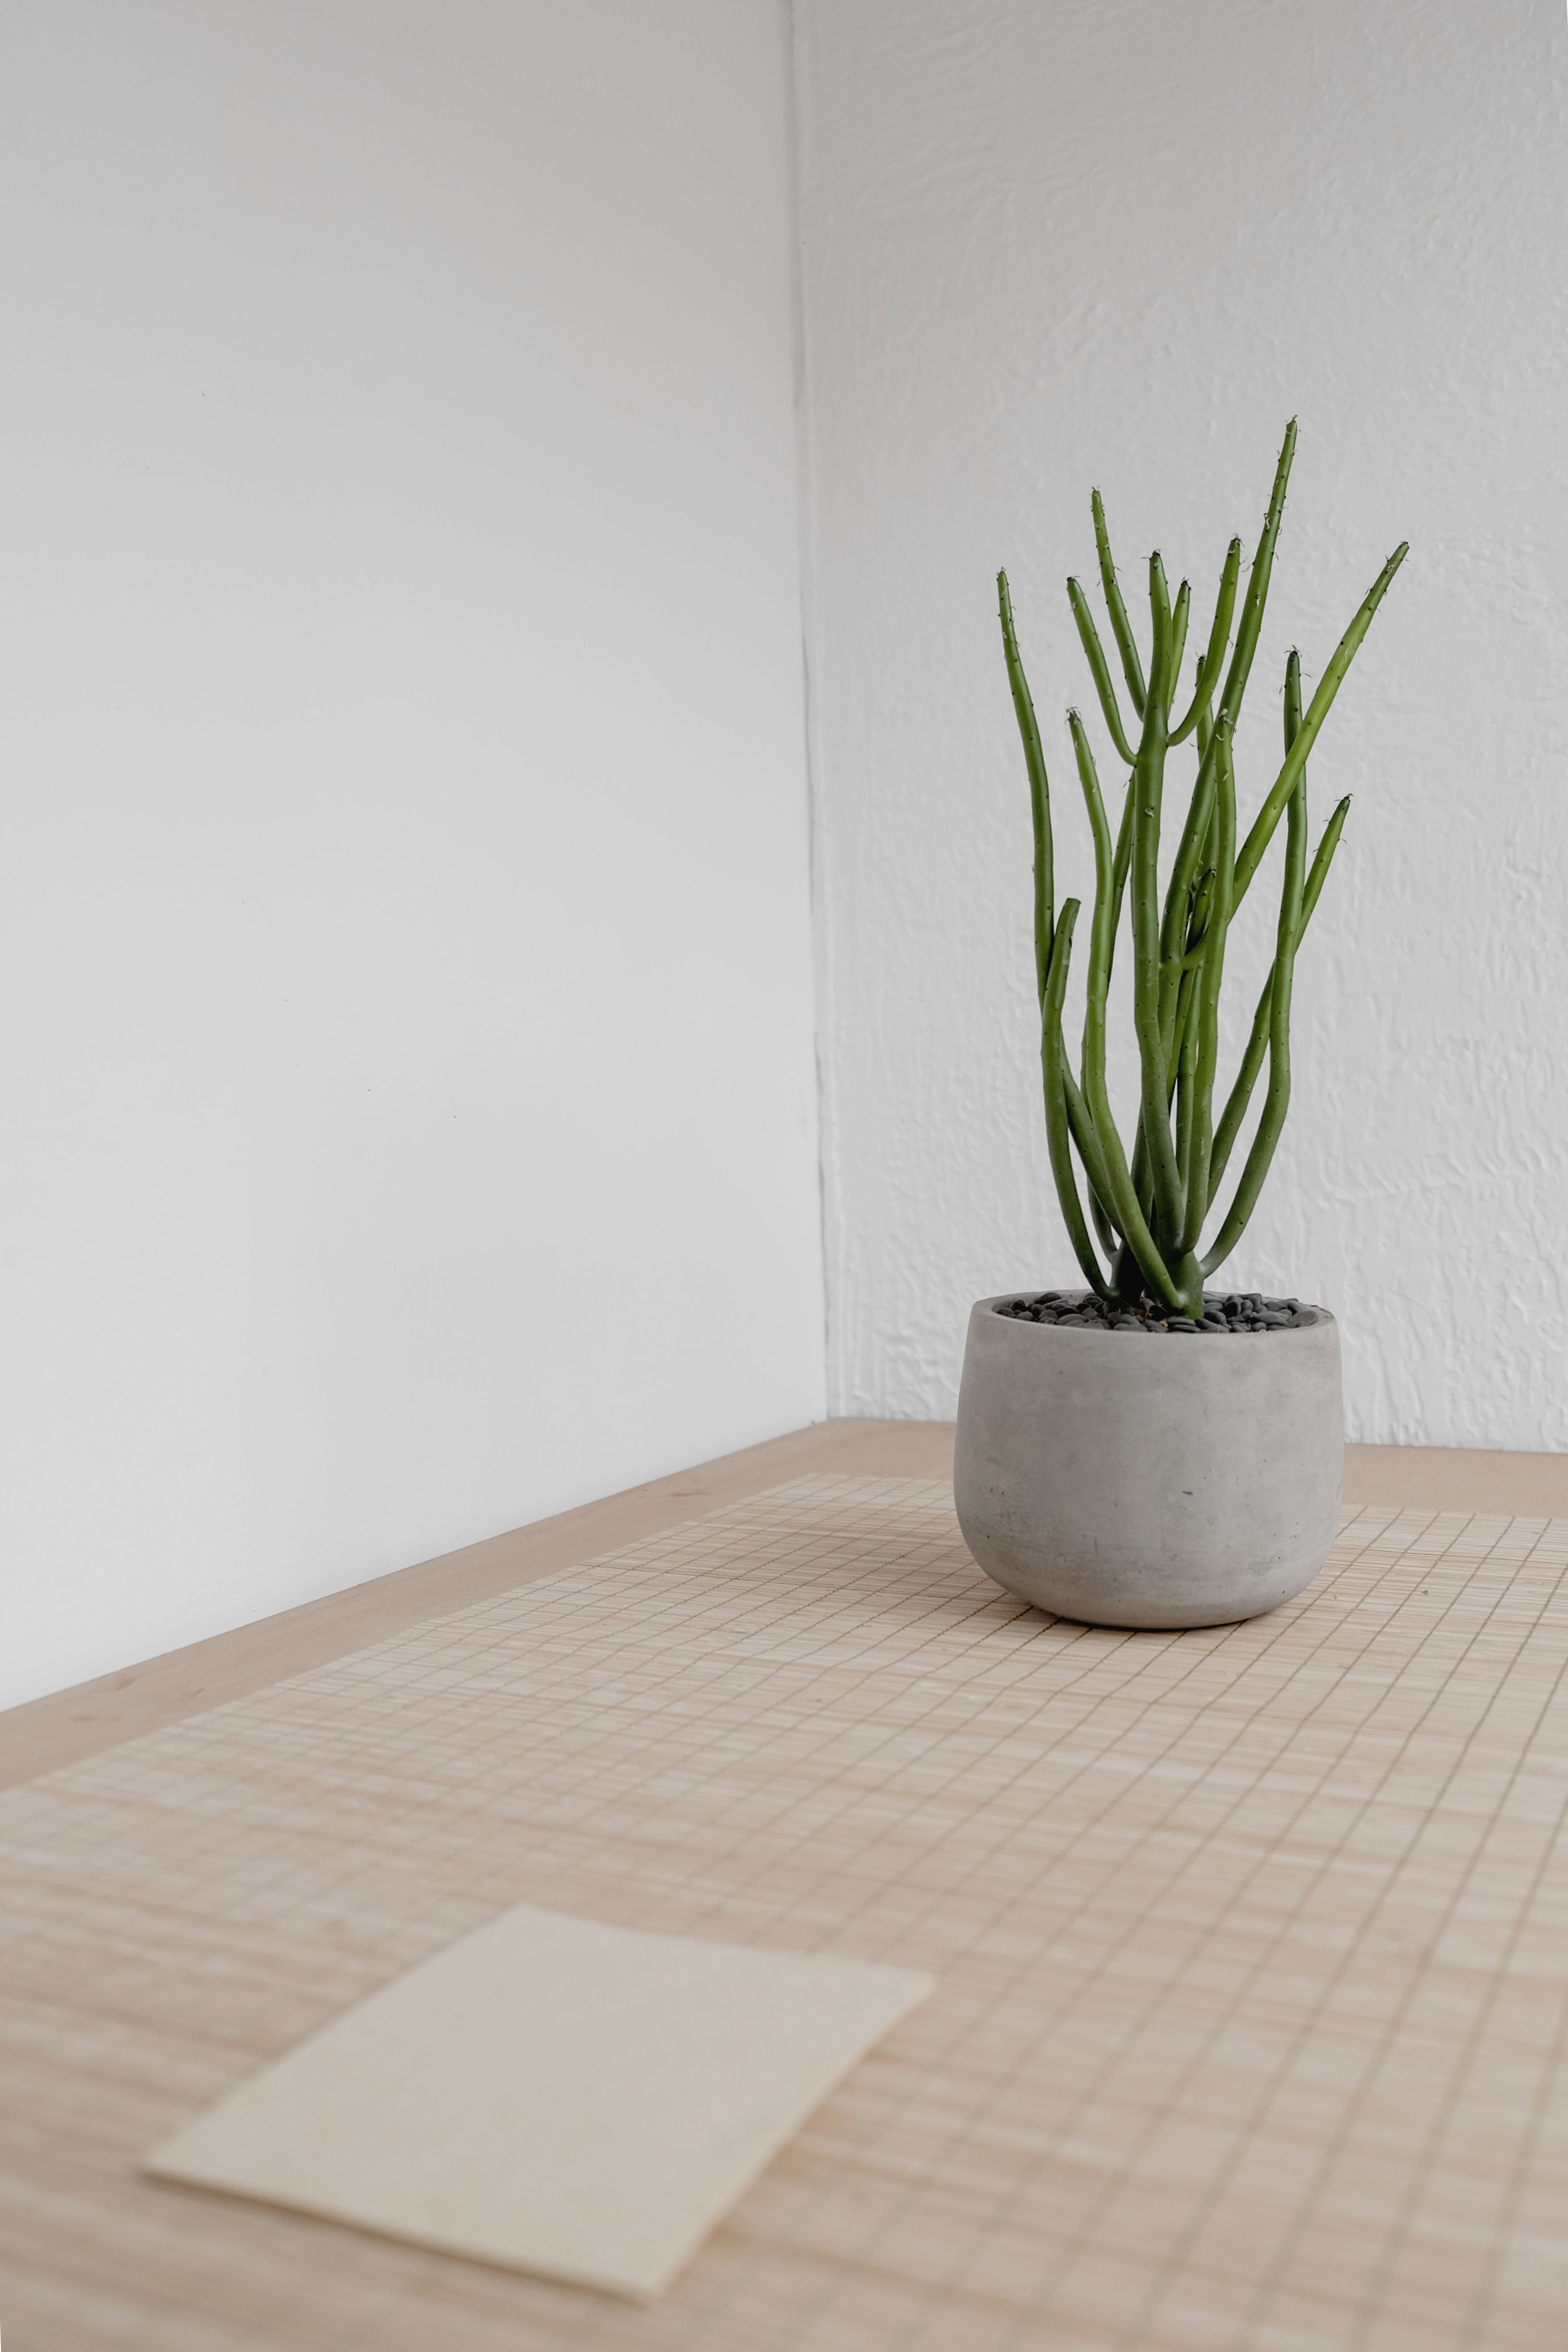 green cactus plant near wall